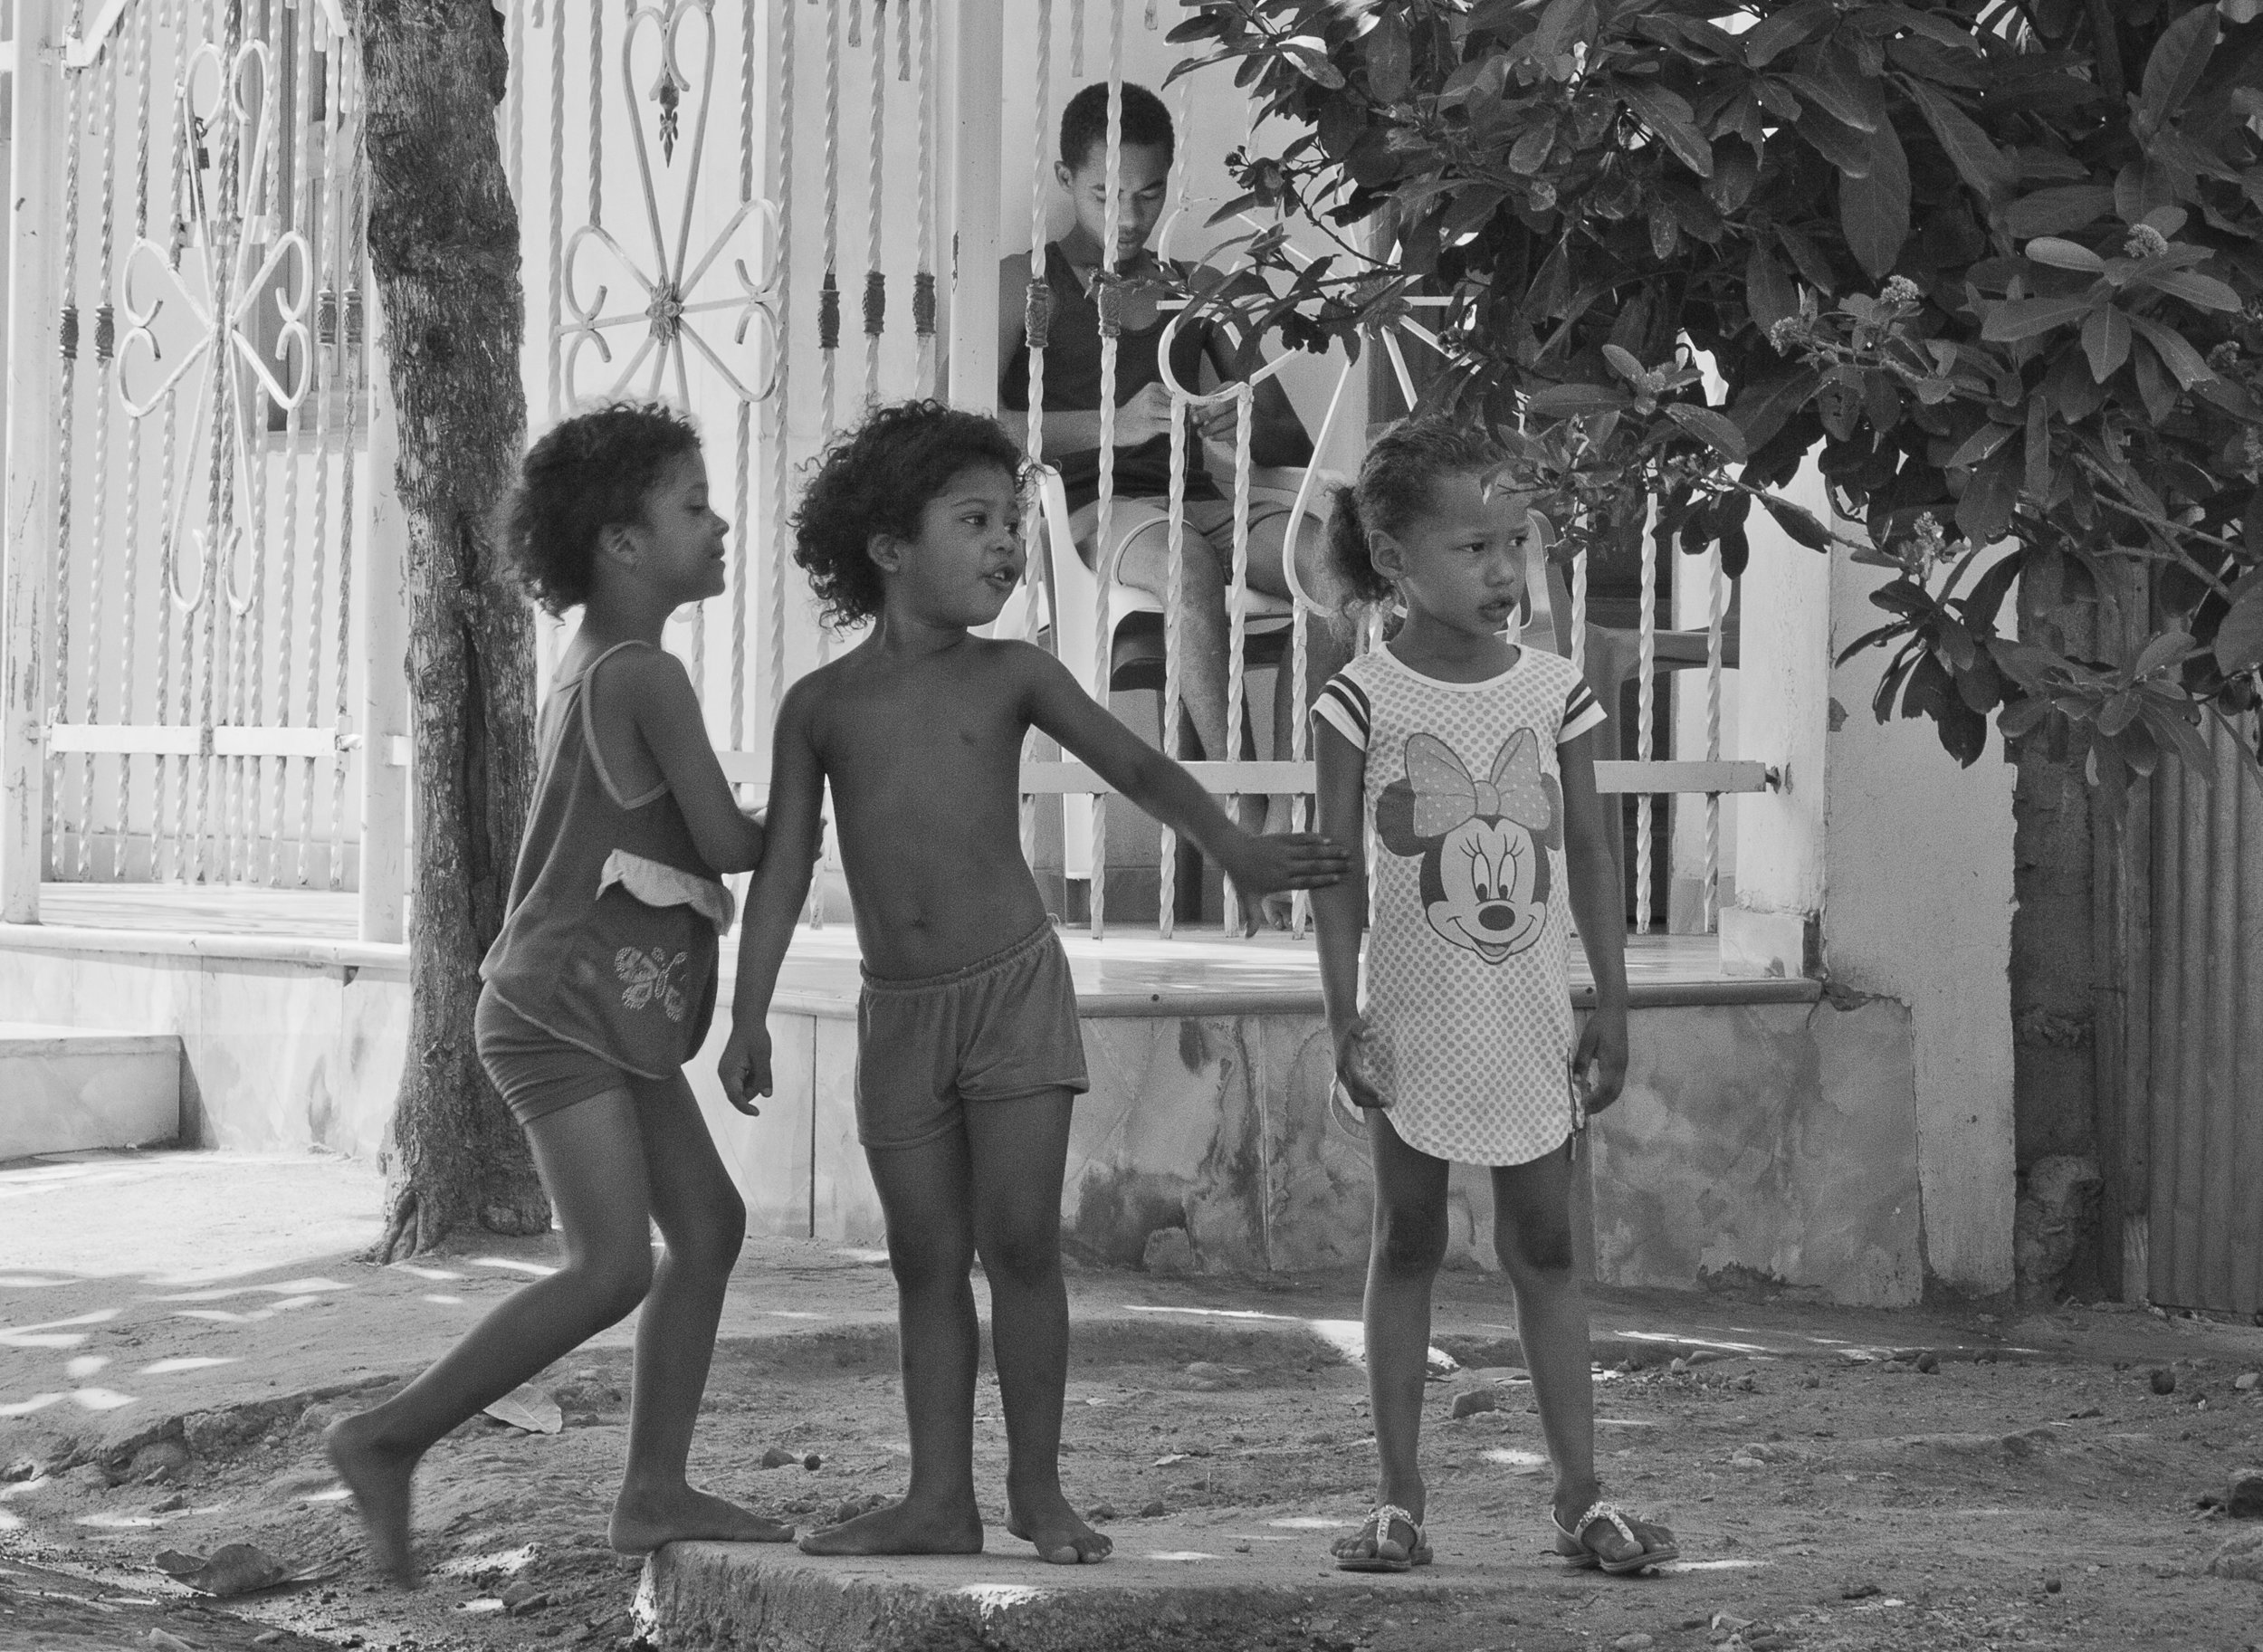 In this image girls are playing in front of a re-contructed house, they represent the vigorous life of the emerging town after fourteen years of rebuilding done step by step by the demanding enterprise of their parents work.